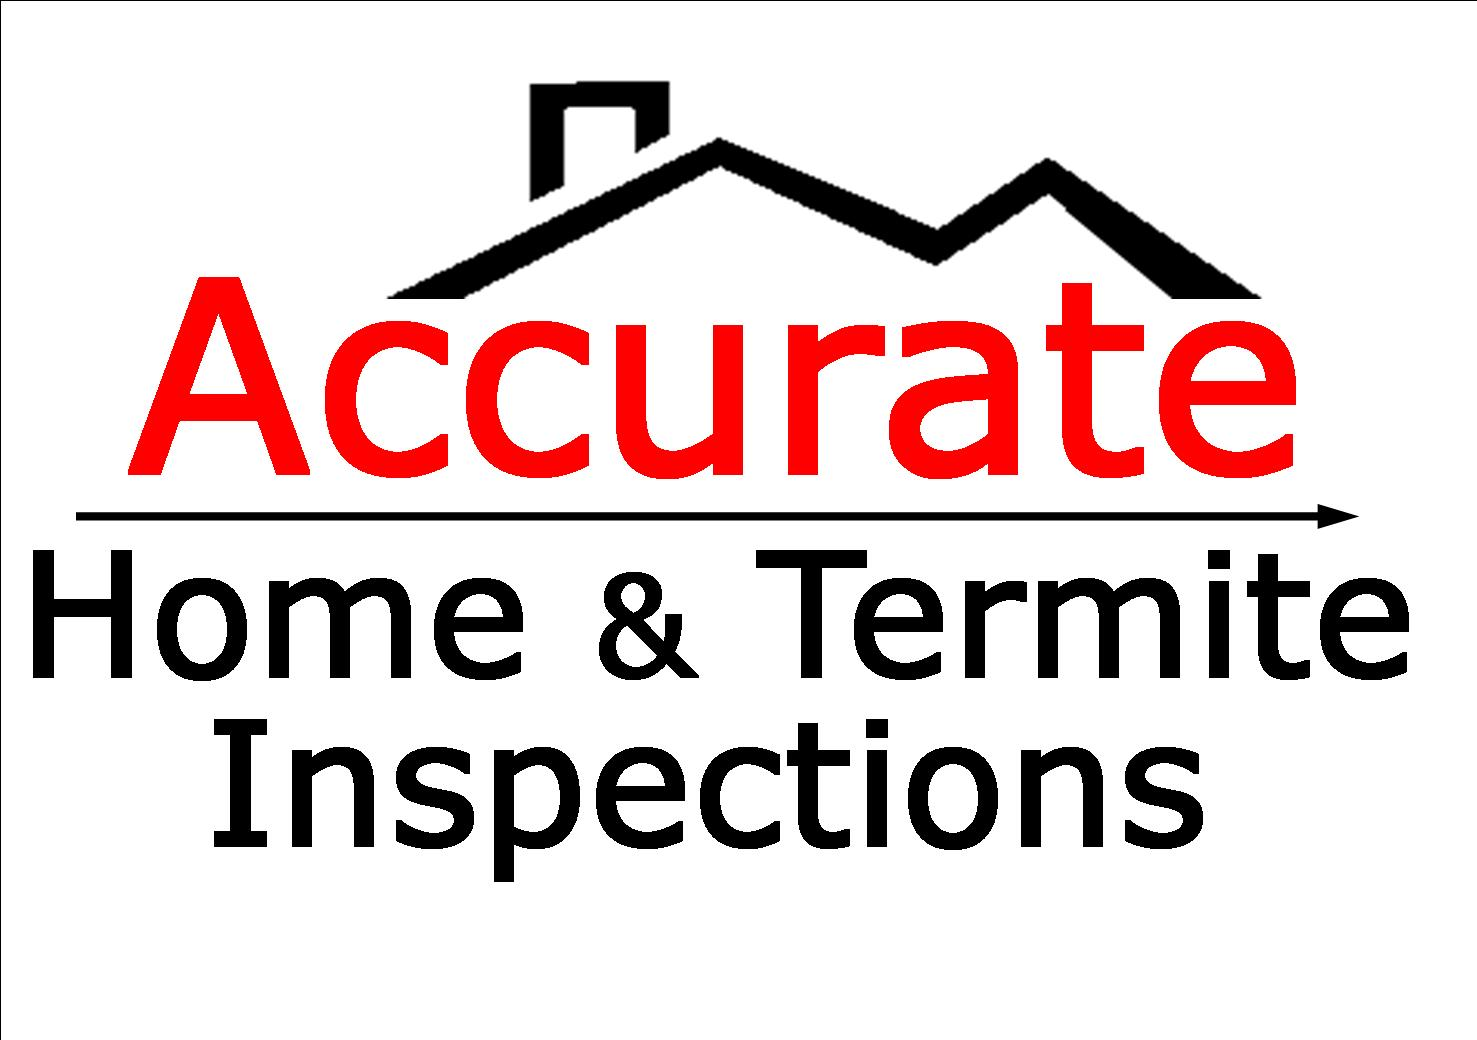 Accurate Home and Termite Inspections